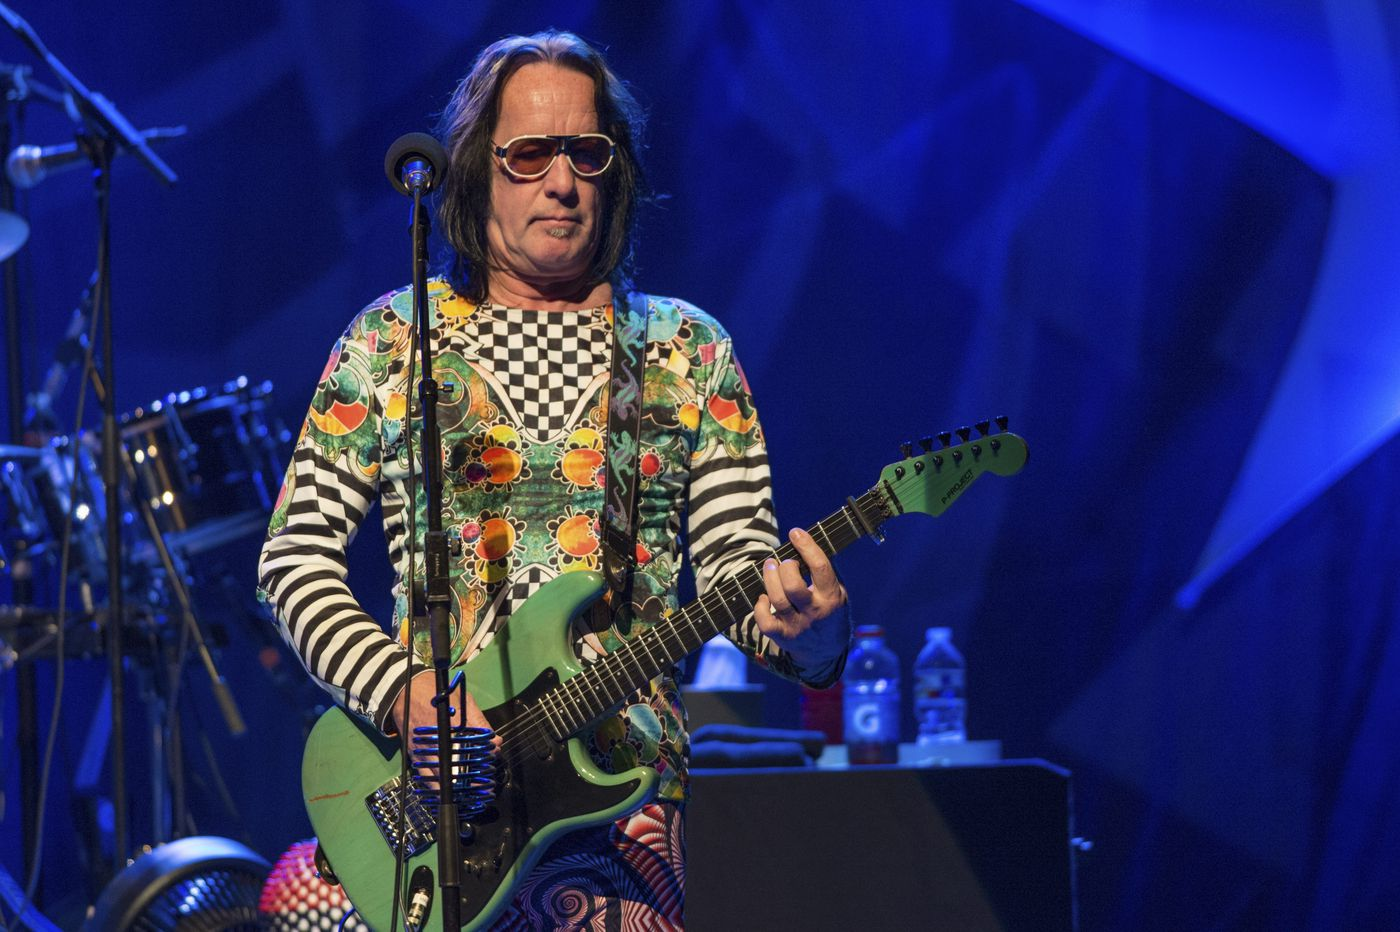 Upper Darby's Todd Rundgren nominated for Rock and Roll Hall of Fame's Class of 2019